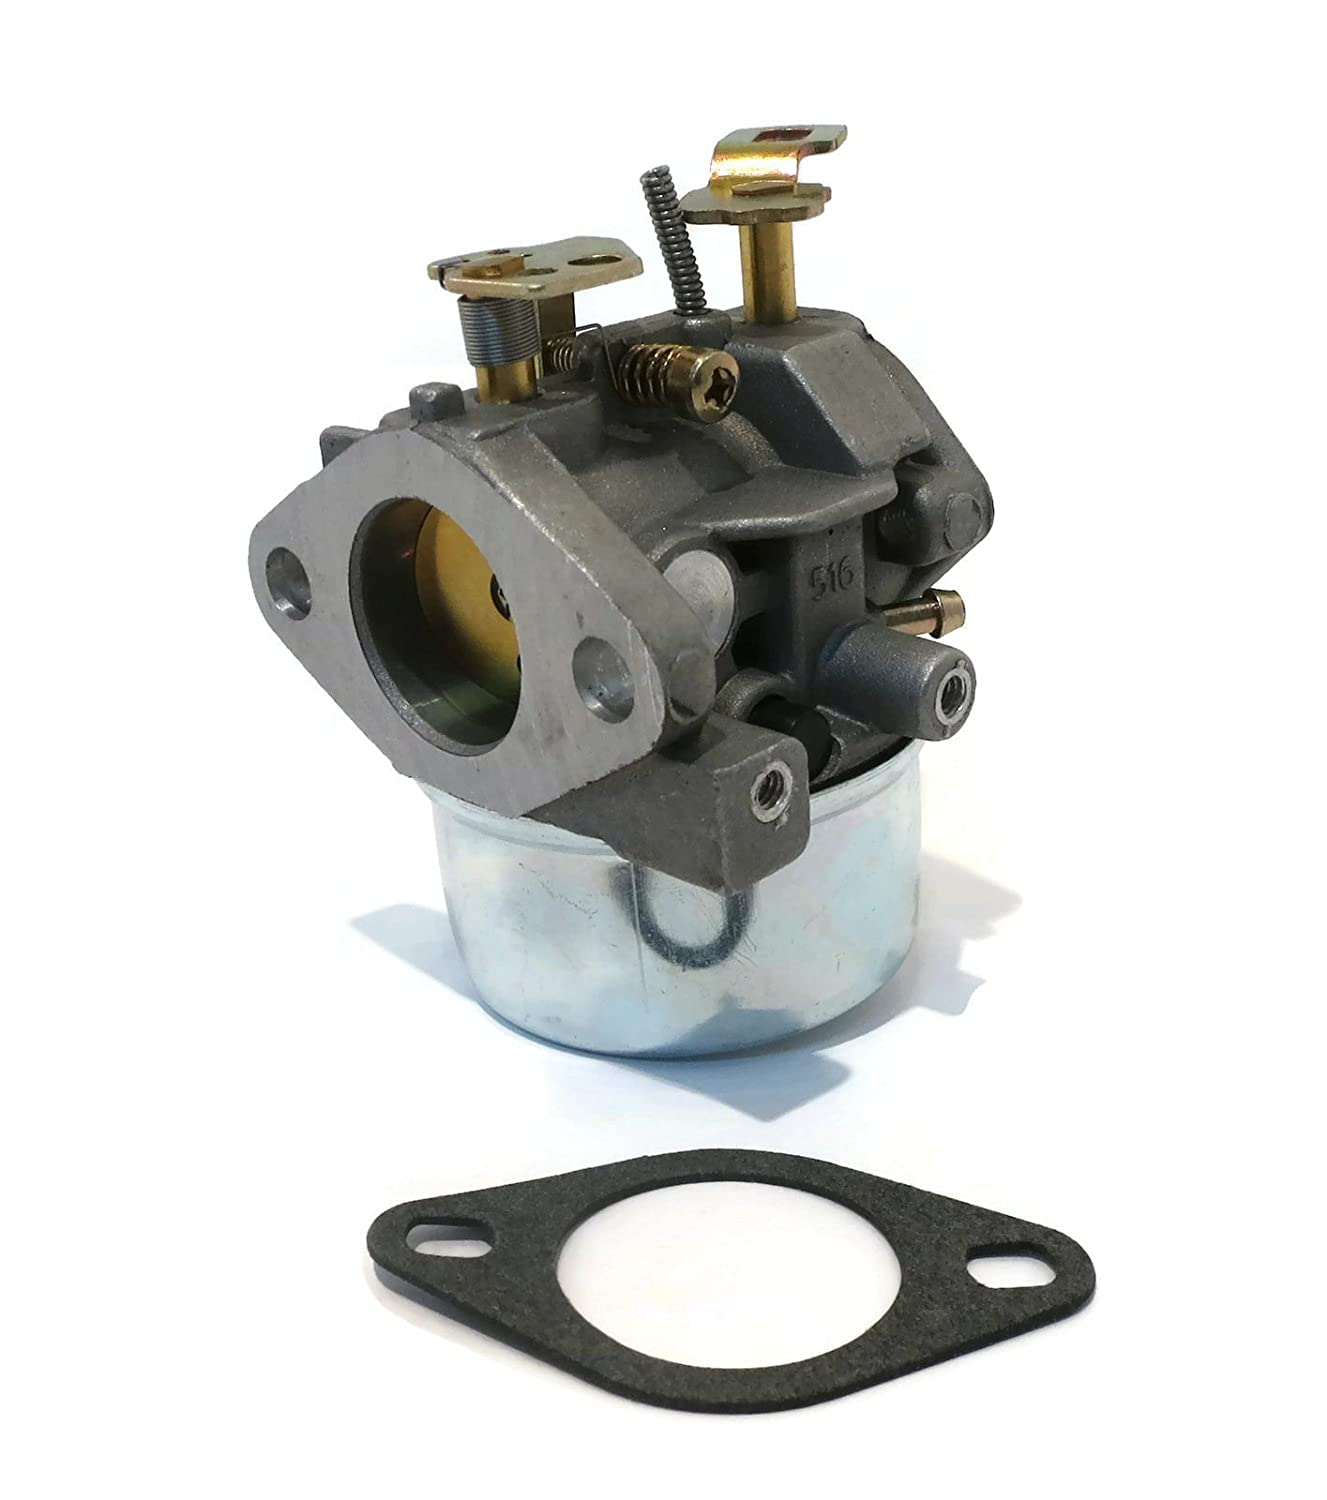 Carburetor W Gasket For Tecumseh 8hp 85hp 9hp Hmsk80 6 5 Hp Diagram Hmsk85 Hmsk90 Snowblowers By The Rop Shop Garden Outdoor